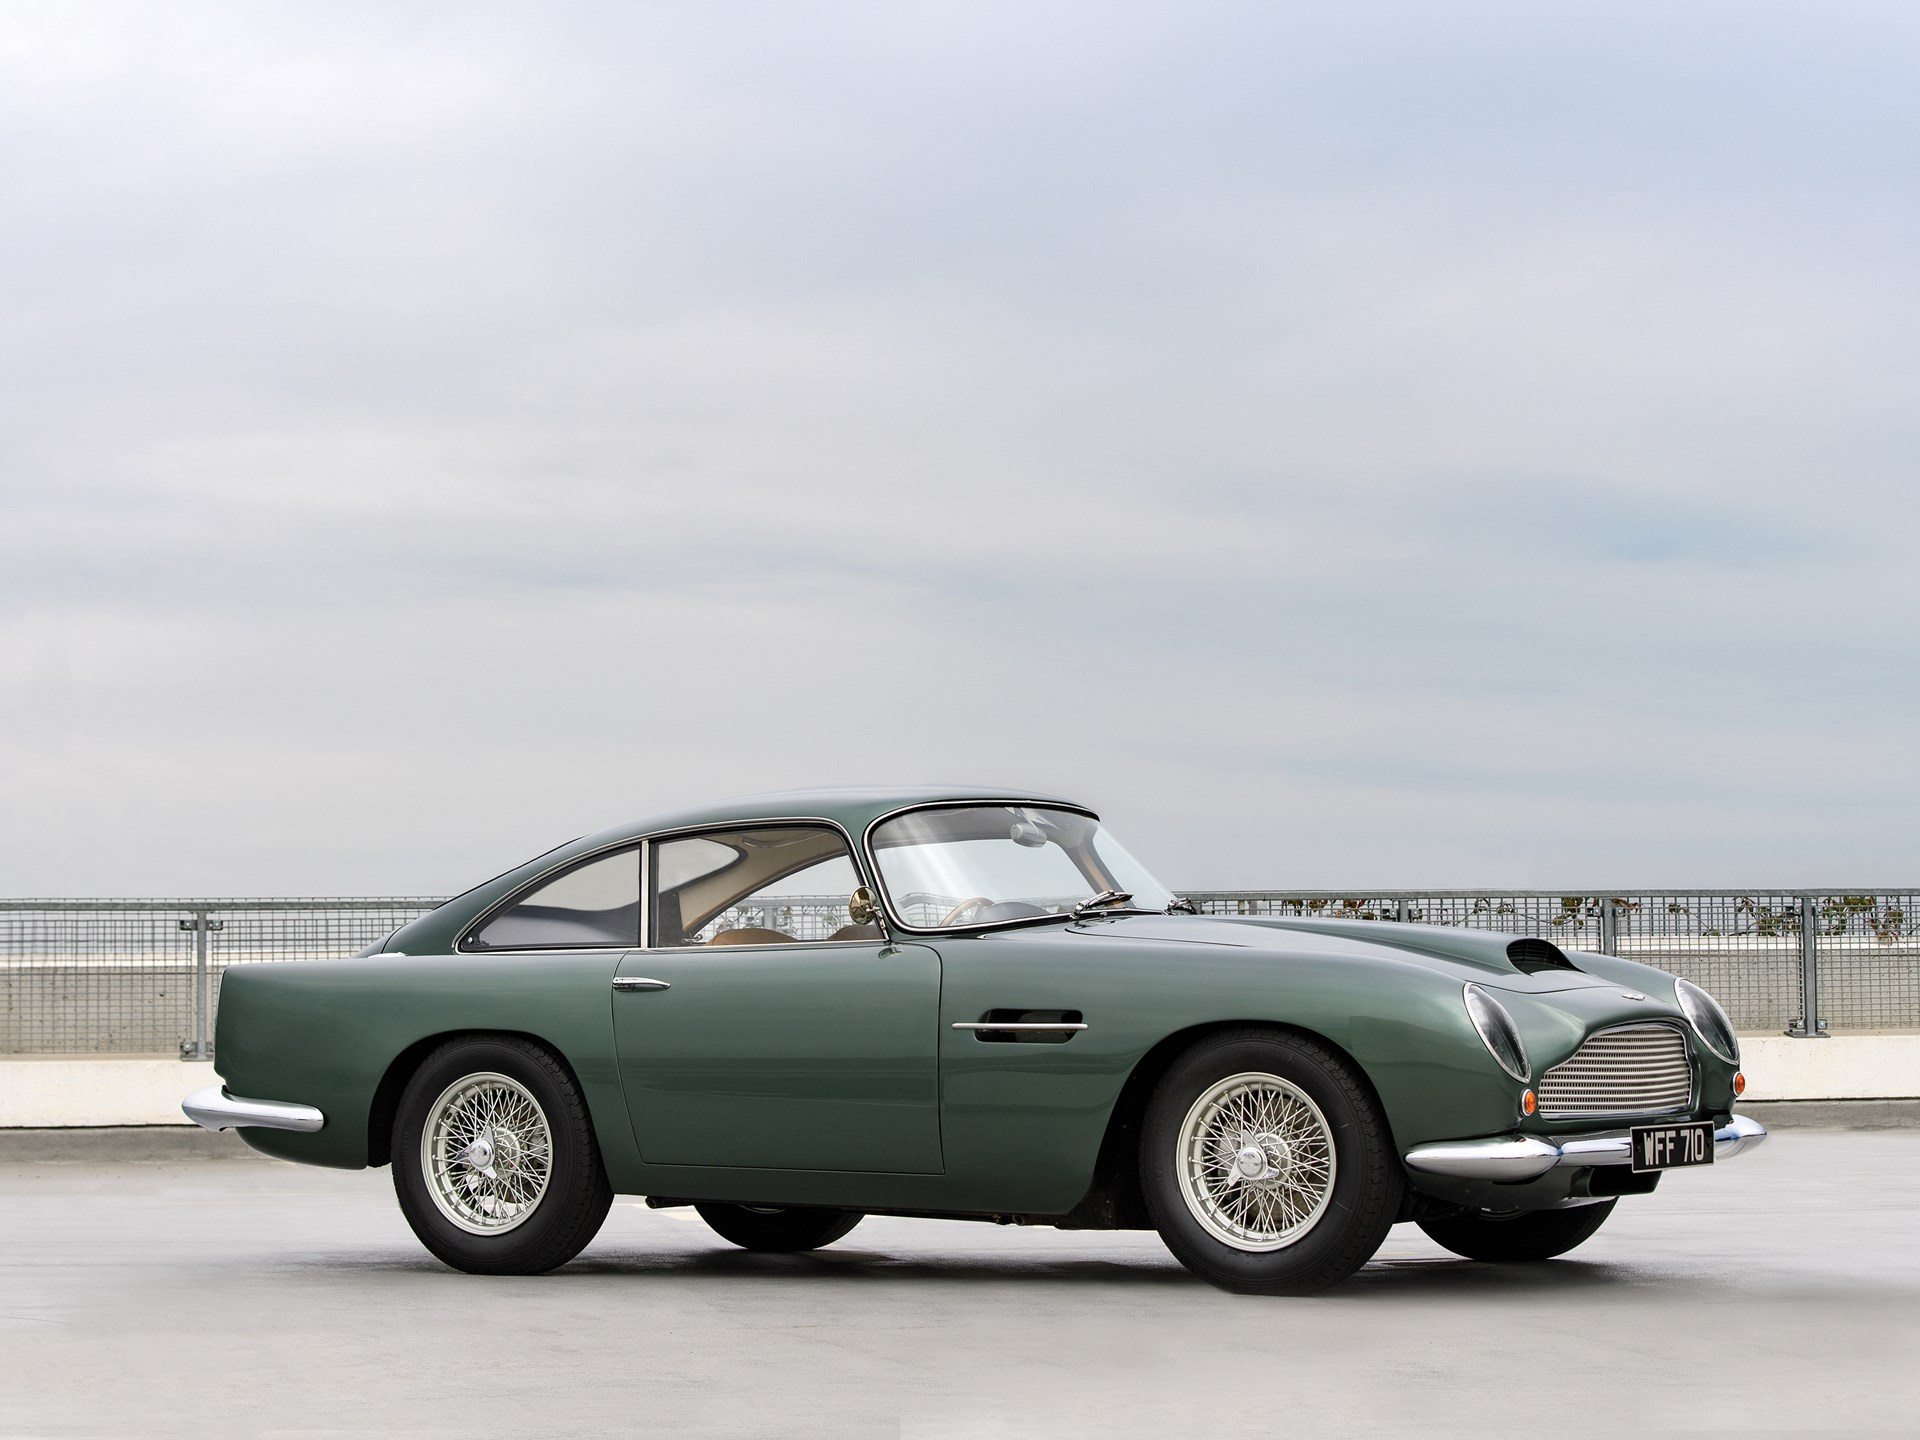 Image result for rm aston db4 gt 0162/r